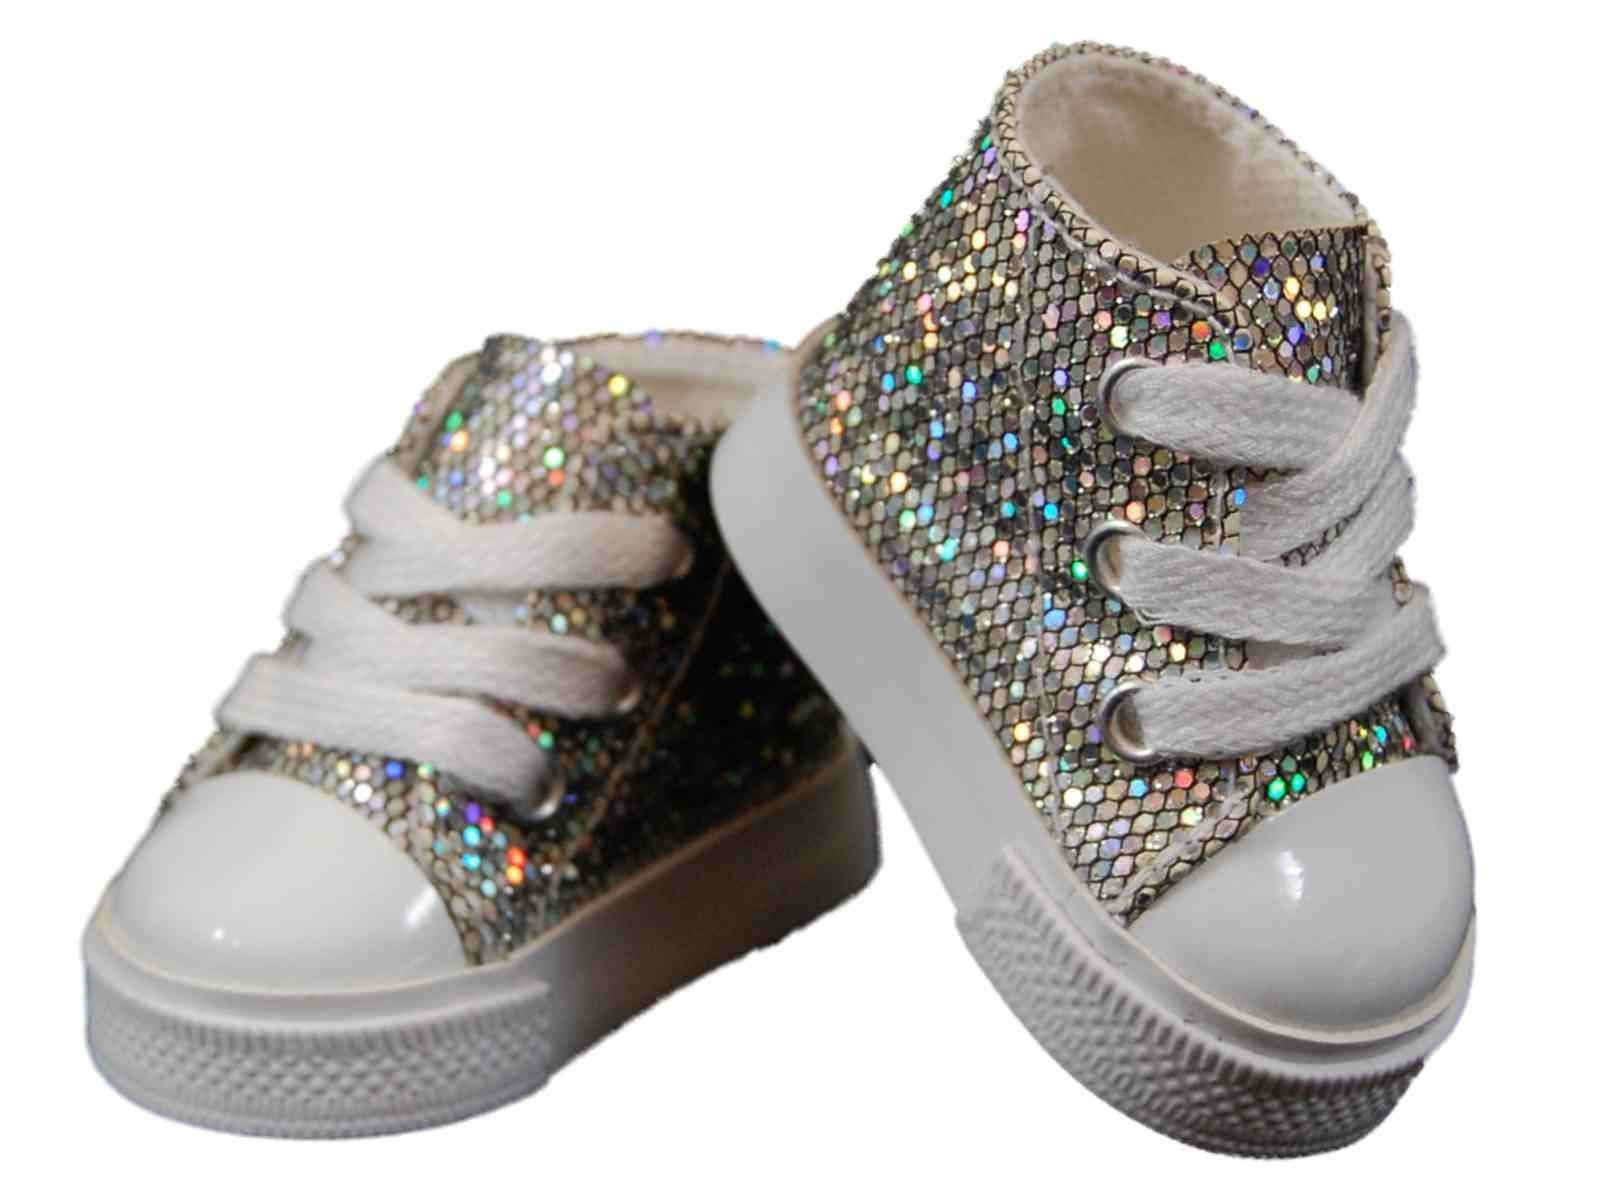 """American Girl Doll Shoes Luxury Silver High top Sneakers Shoes for 18"""" American Girl¨ Doll Of Attractive 48 Models American Girl Doll Shoes"""